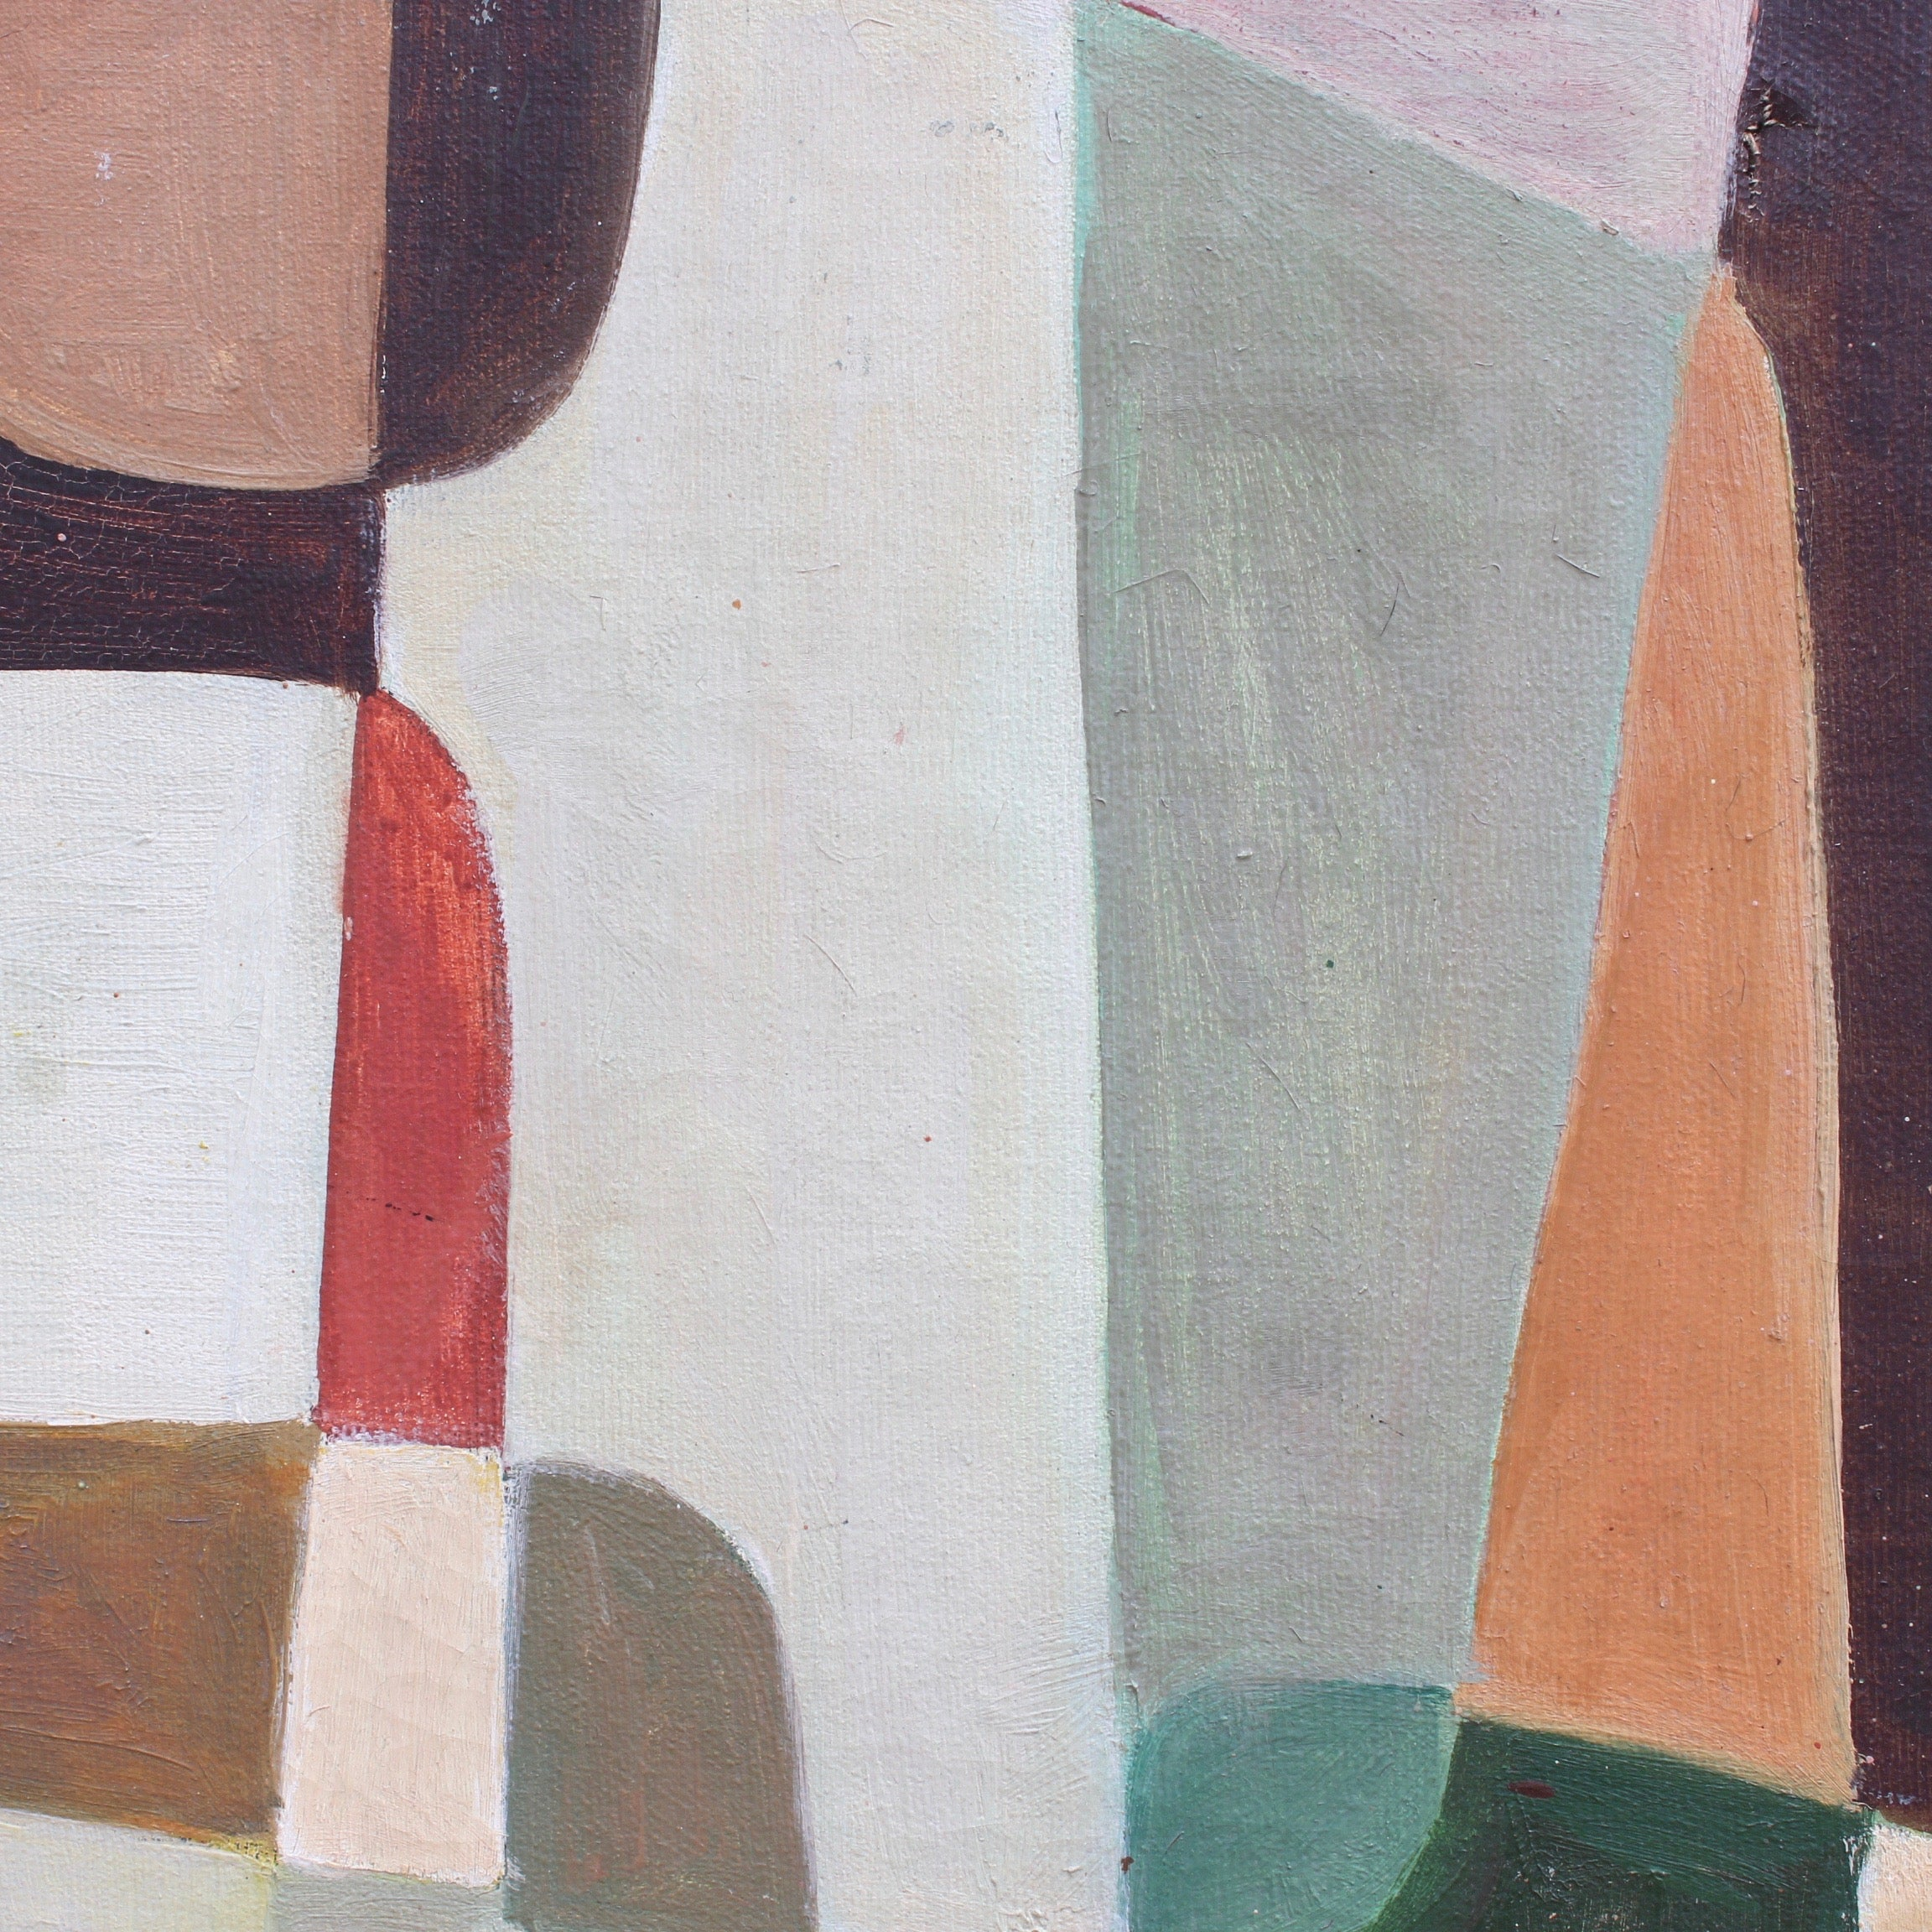 'Abstract Proportions', Italian School (1971)